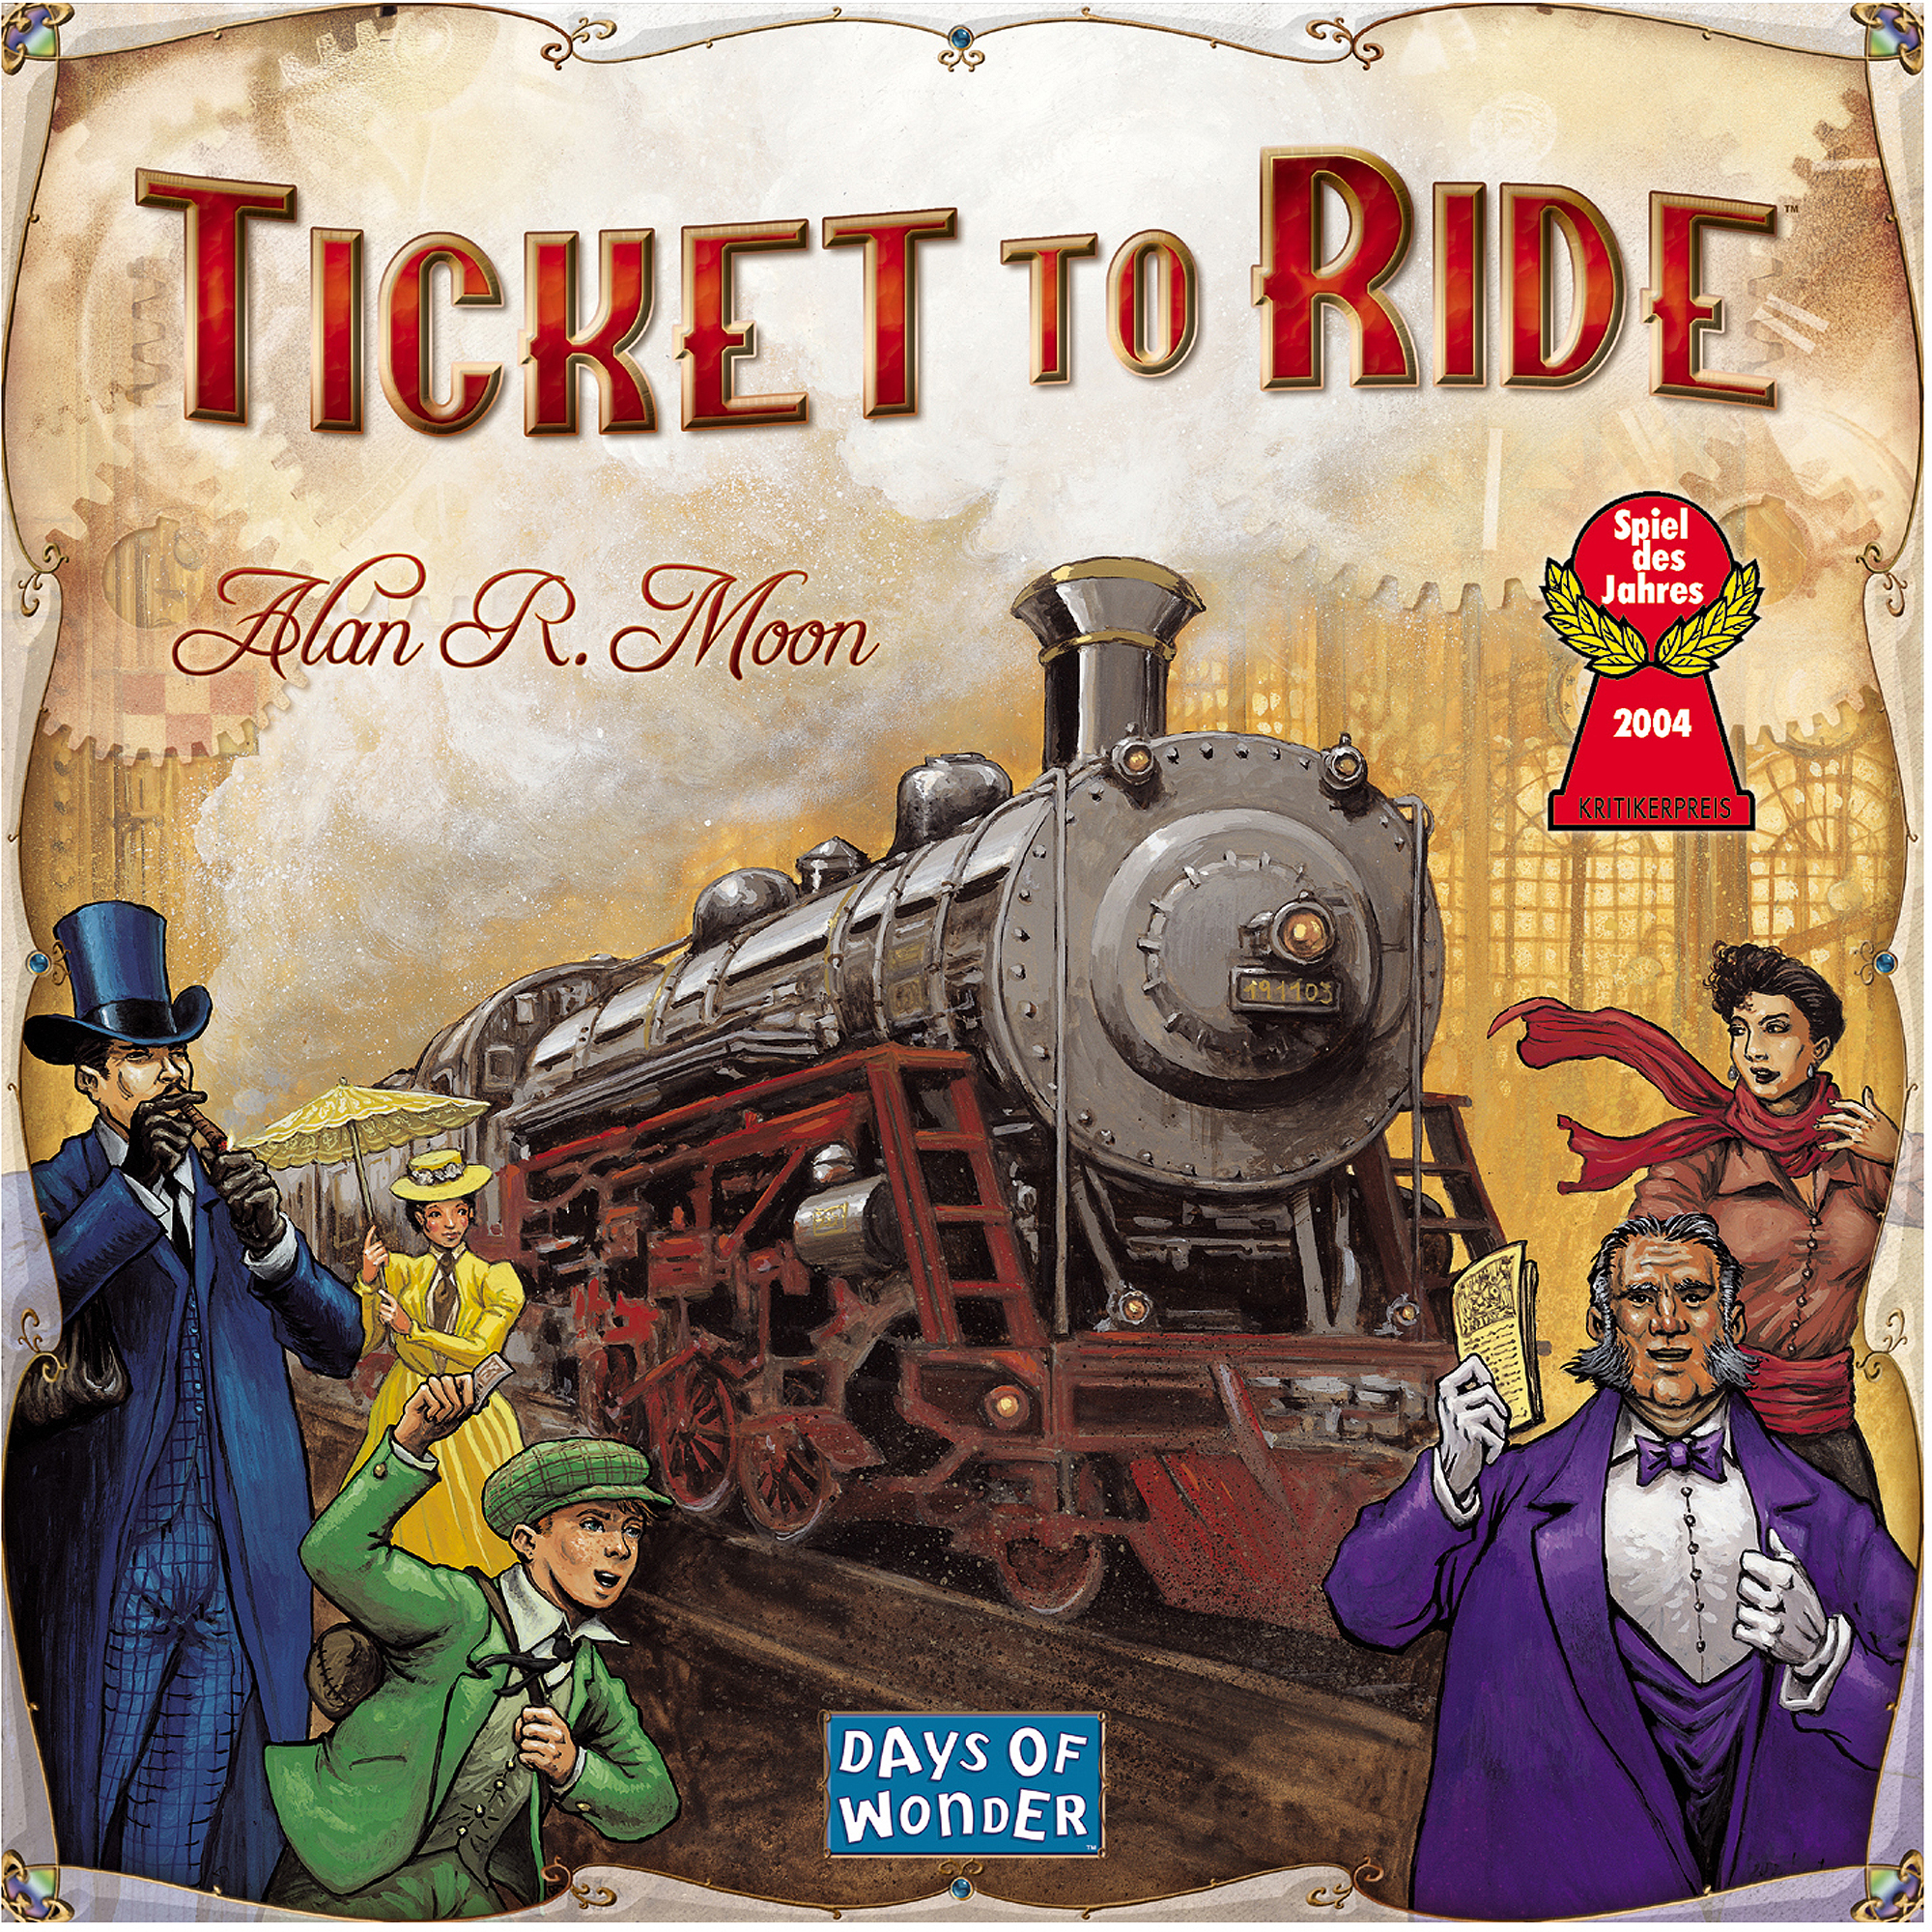 Ticket To Ride - Ticket to Ride is one of the first family-based strategic games I fell in love with. The goal of laying down train cars to claim railway routes and competing with others in the process is very enticing. It is a simple game to learn but has intense strategic decisions along with competitive game play. This game has grown so much in popularity with over 20 different Ticket to Ride games/expansions in total!I personally own 3 of those and they are so much fun to play even after more then a decade of playing the original. Ticket to Ride is a must own for any type of gamer!